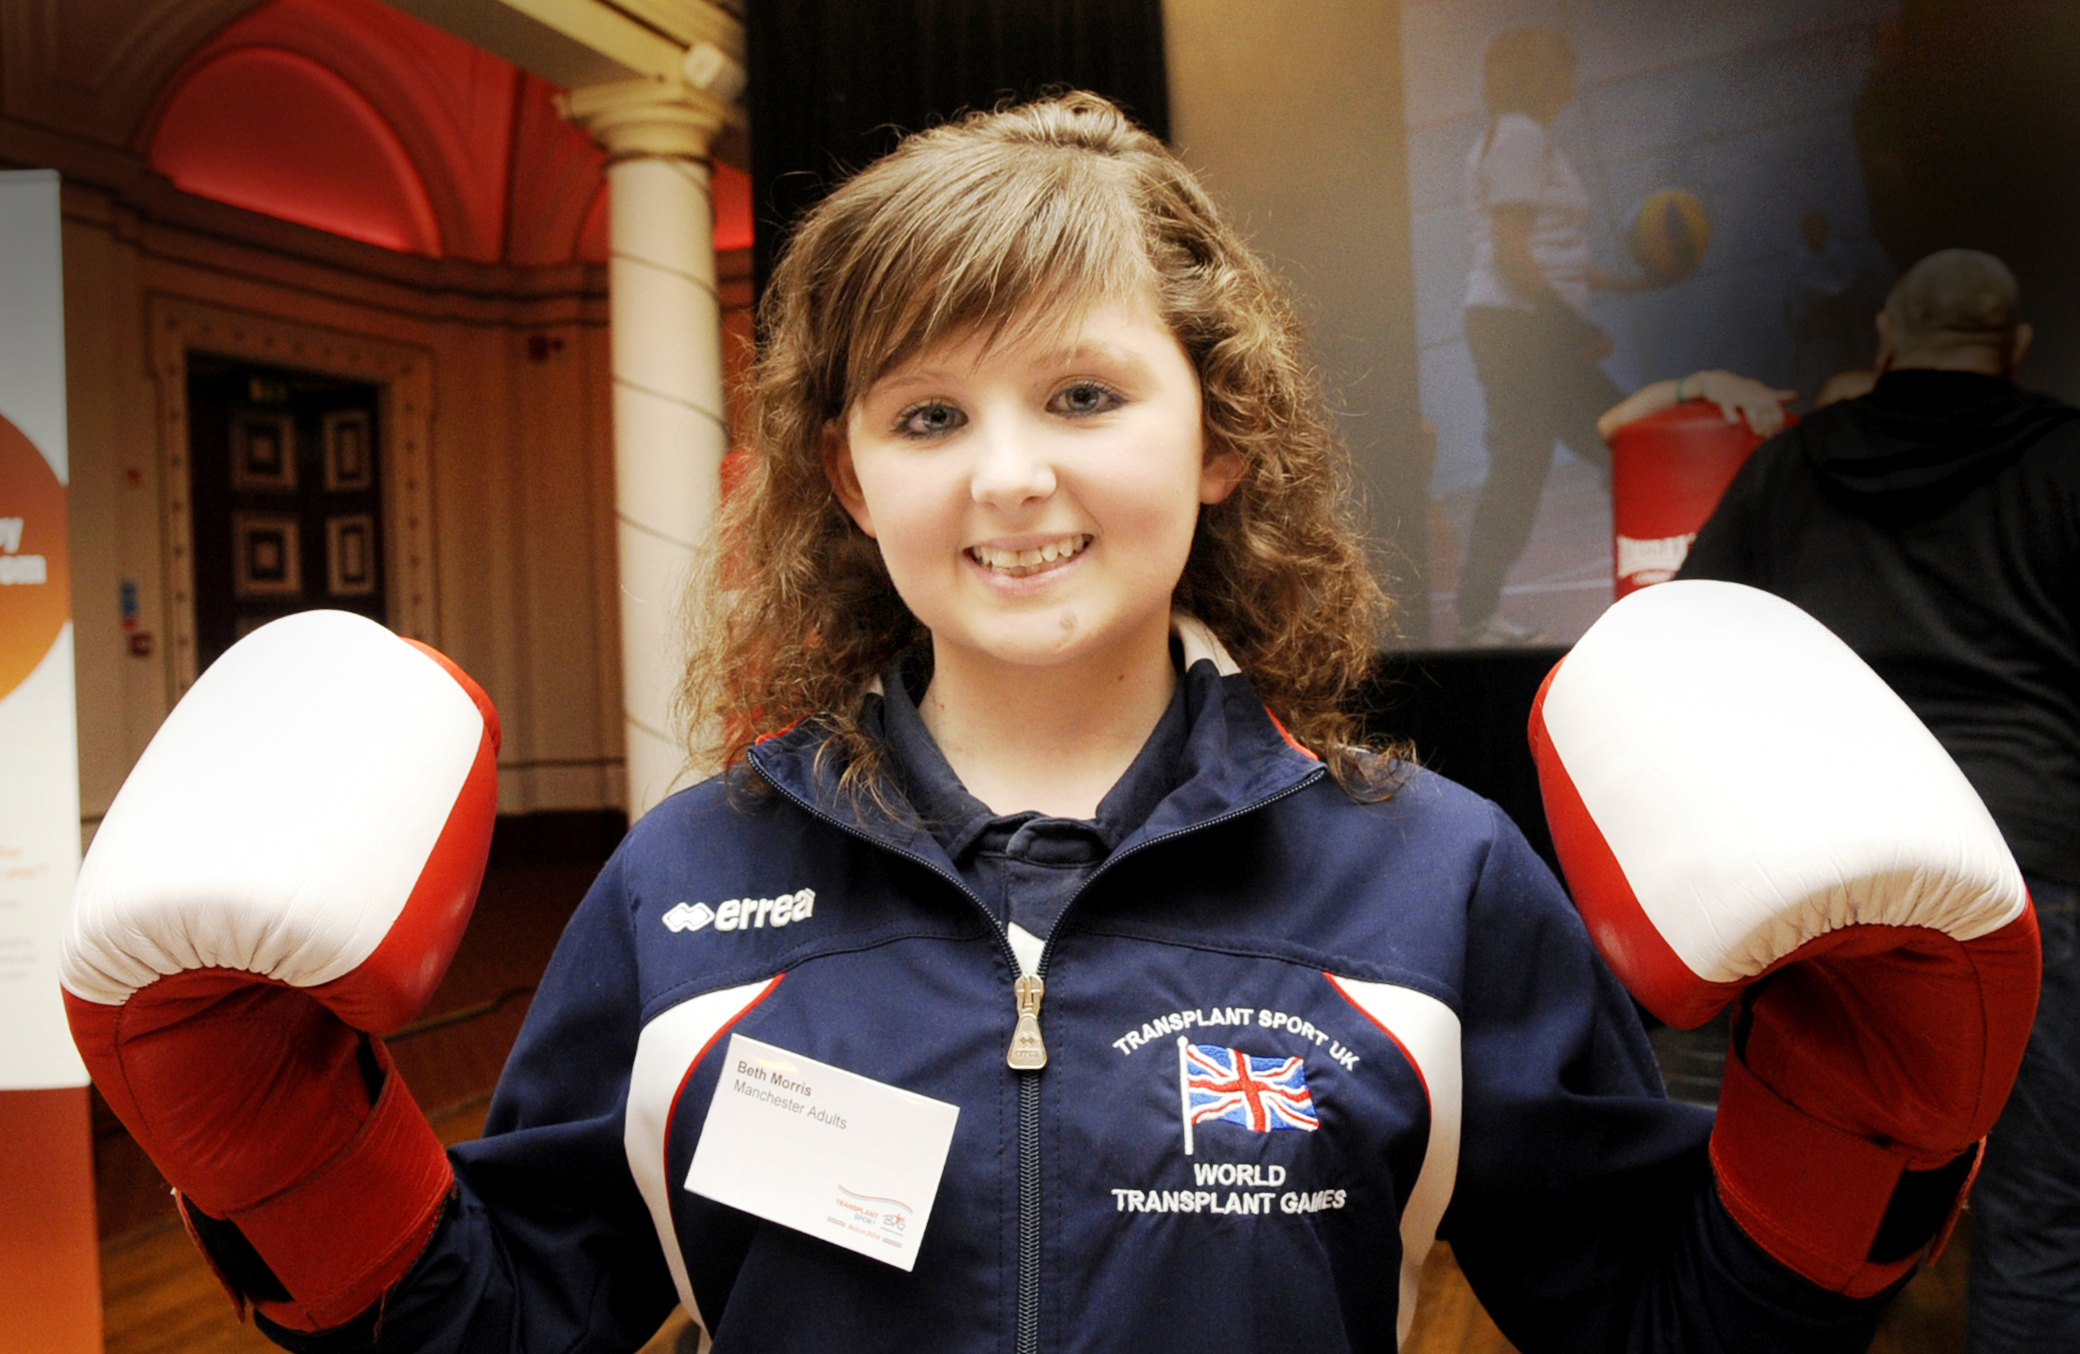 Bolton will host the 2014 British Transplant Games